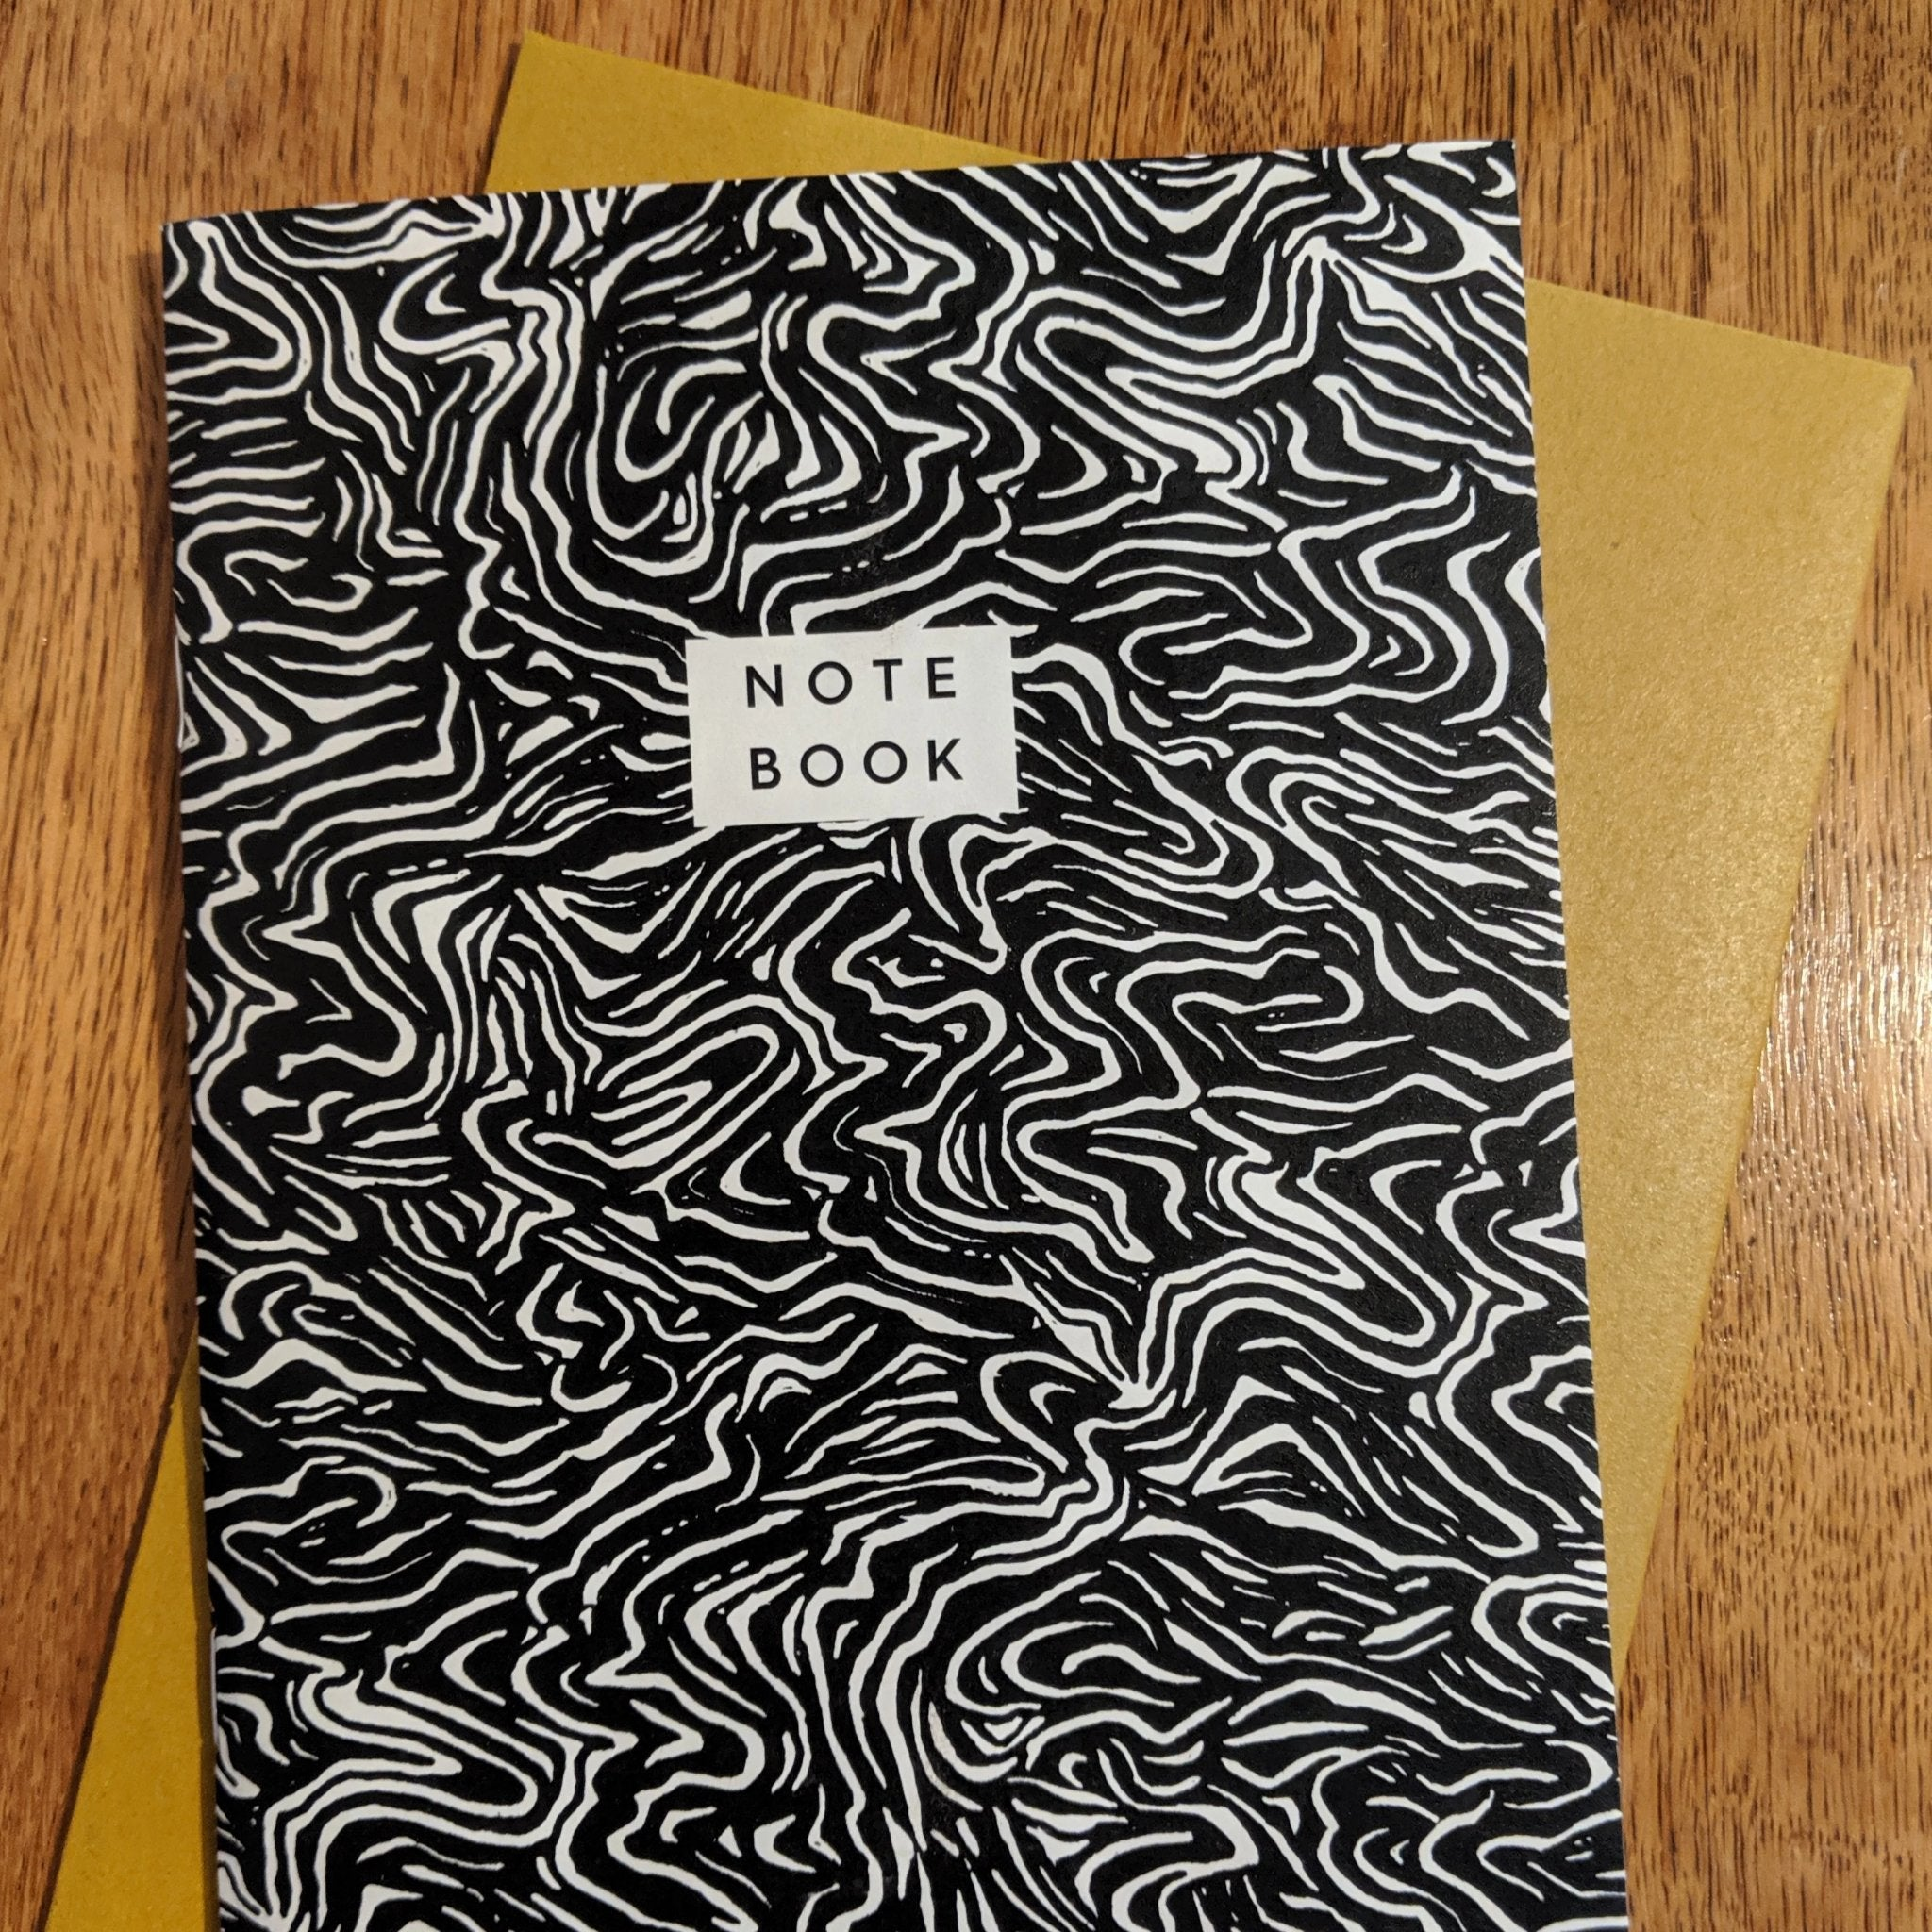 Recycled paper note book wave pattern